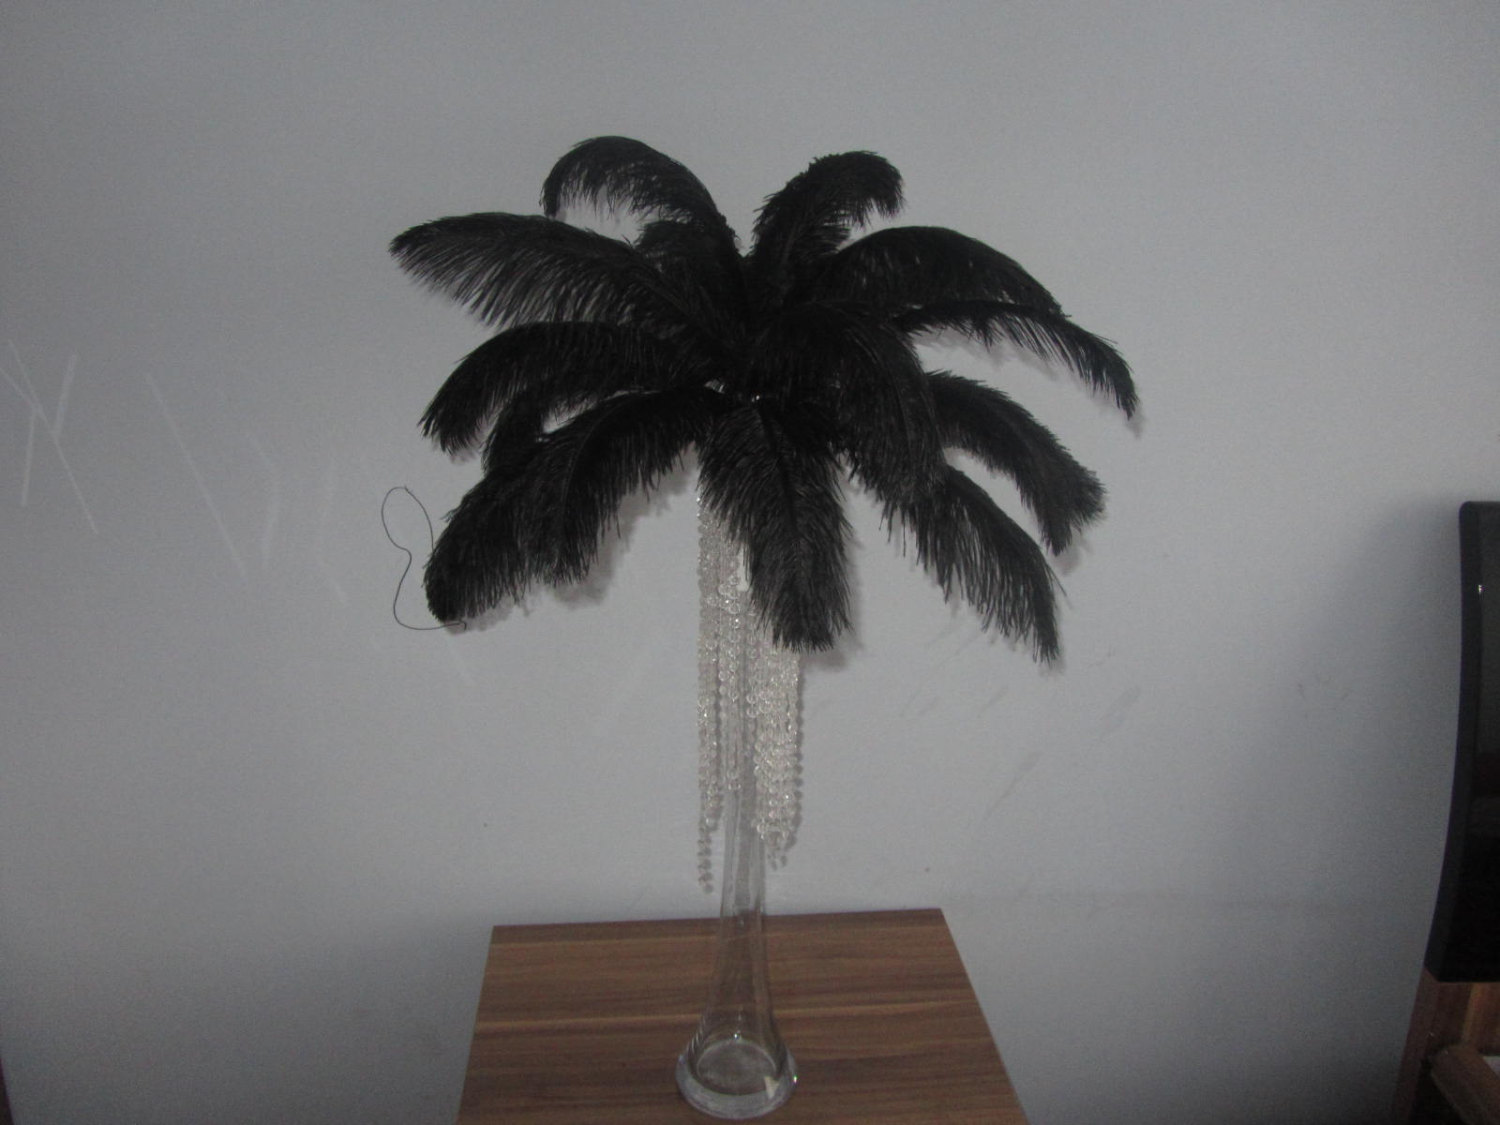 175 black 16-18 inch AND 250 black 12-14 inch ostrich feathers